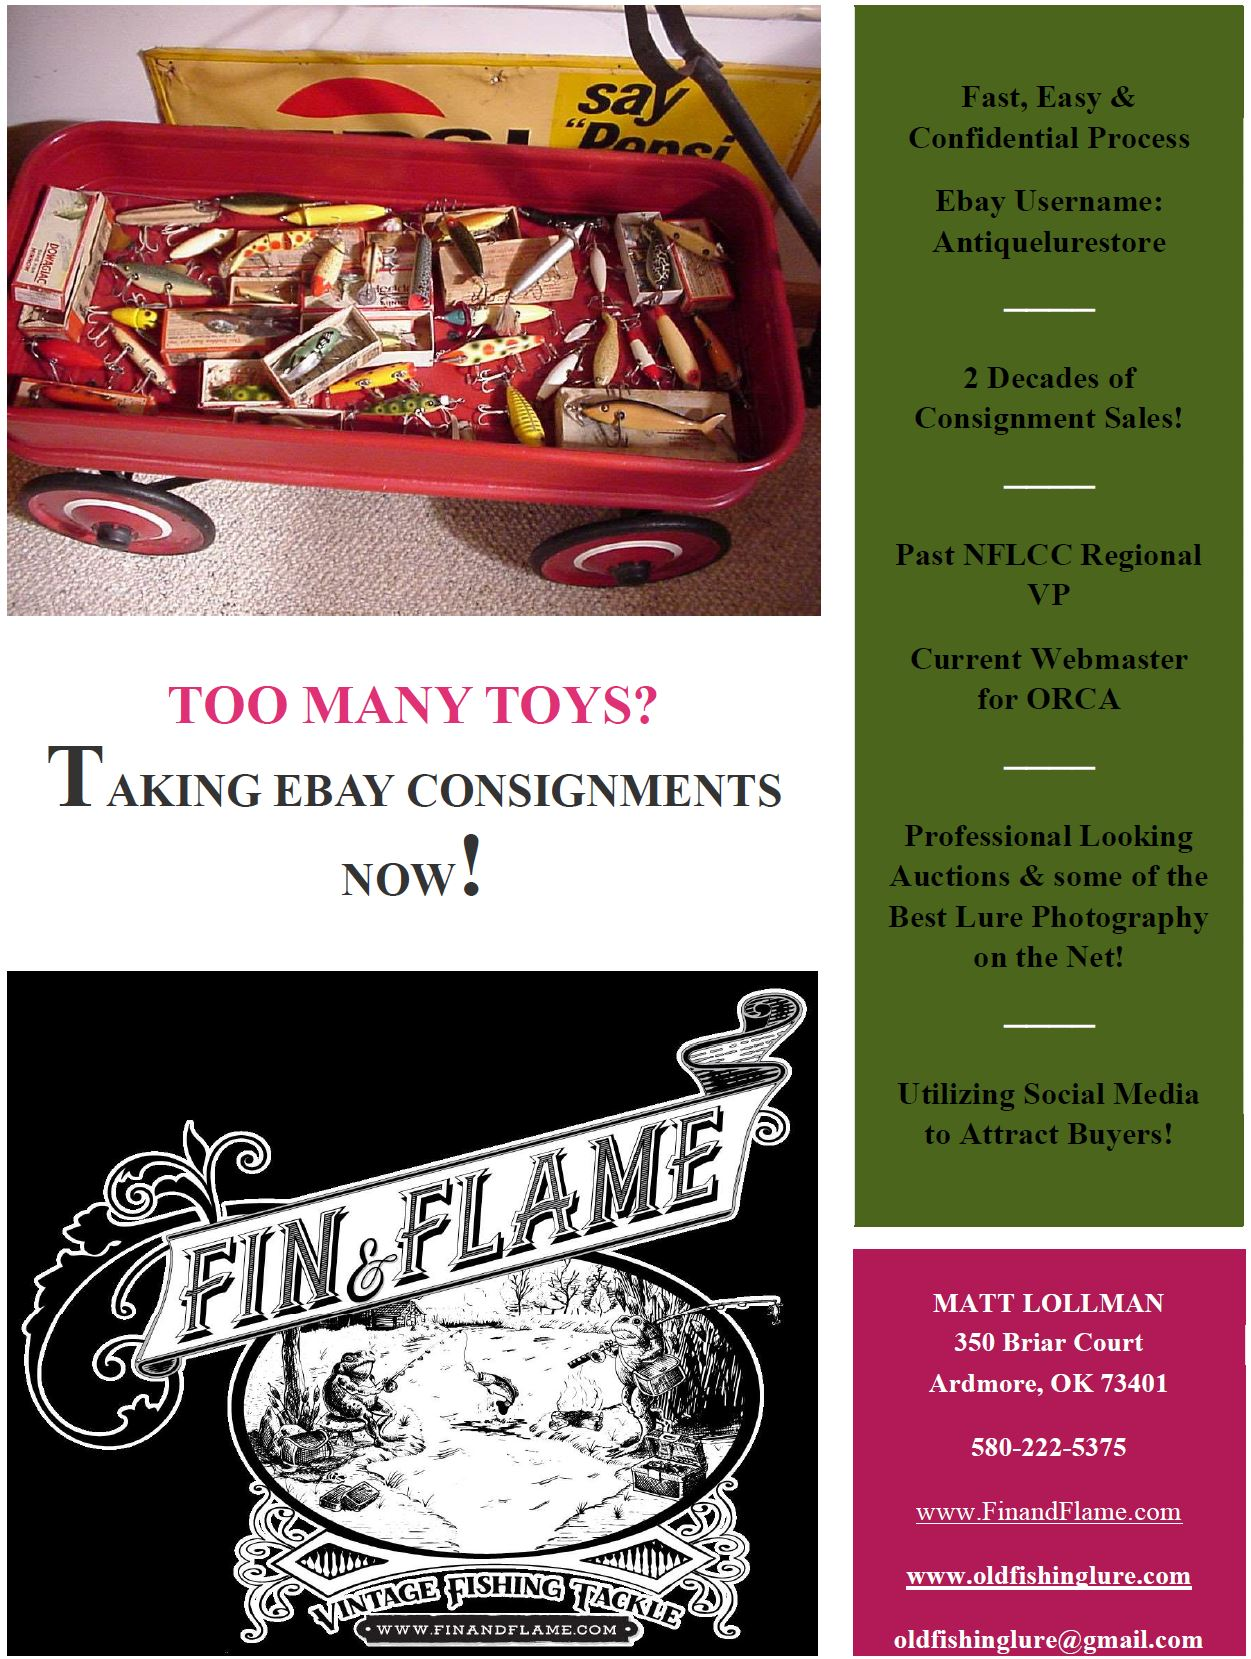 Miscellaneous antique lure makers fin and flame fishing for history fishing tackle consignments nvjuhfo Choice Image